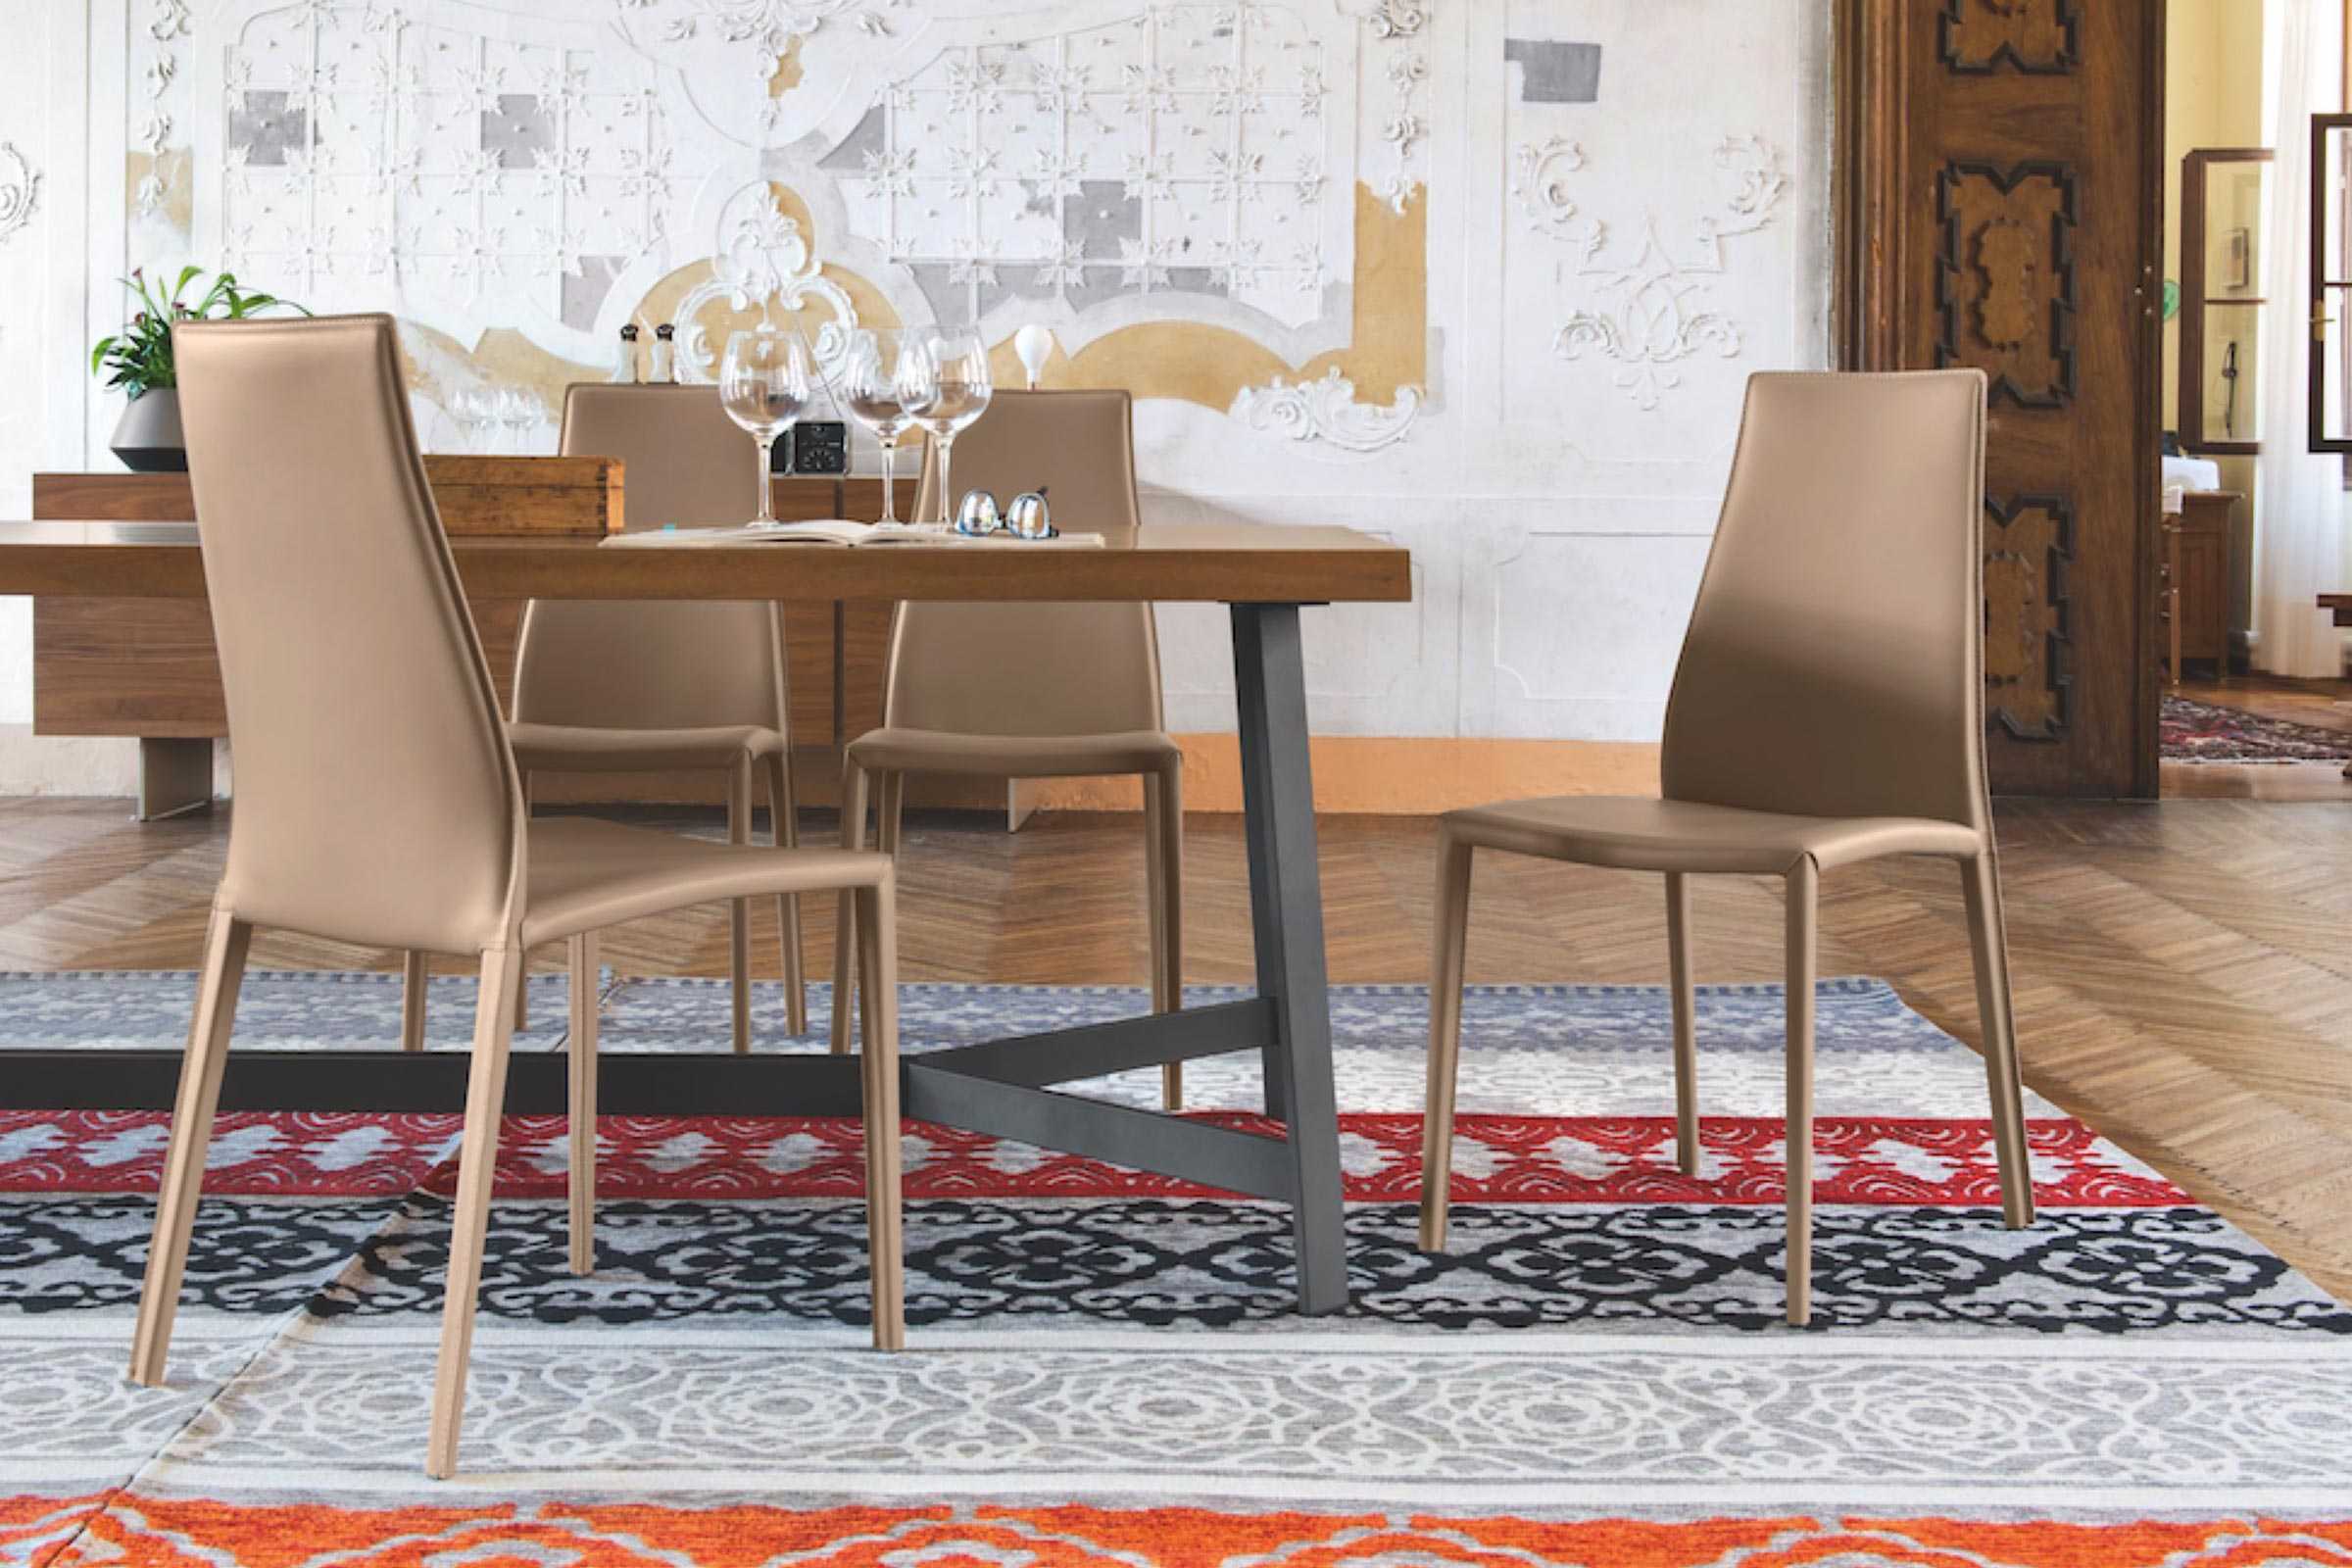 Calligaris Aida Plus Fully Leather Upholstered Chair Vero Cuoio Cs1484 Calligaris Nyc New York City Soho Chelsea Upper East Side